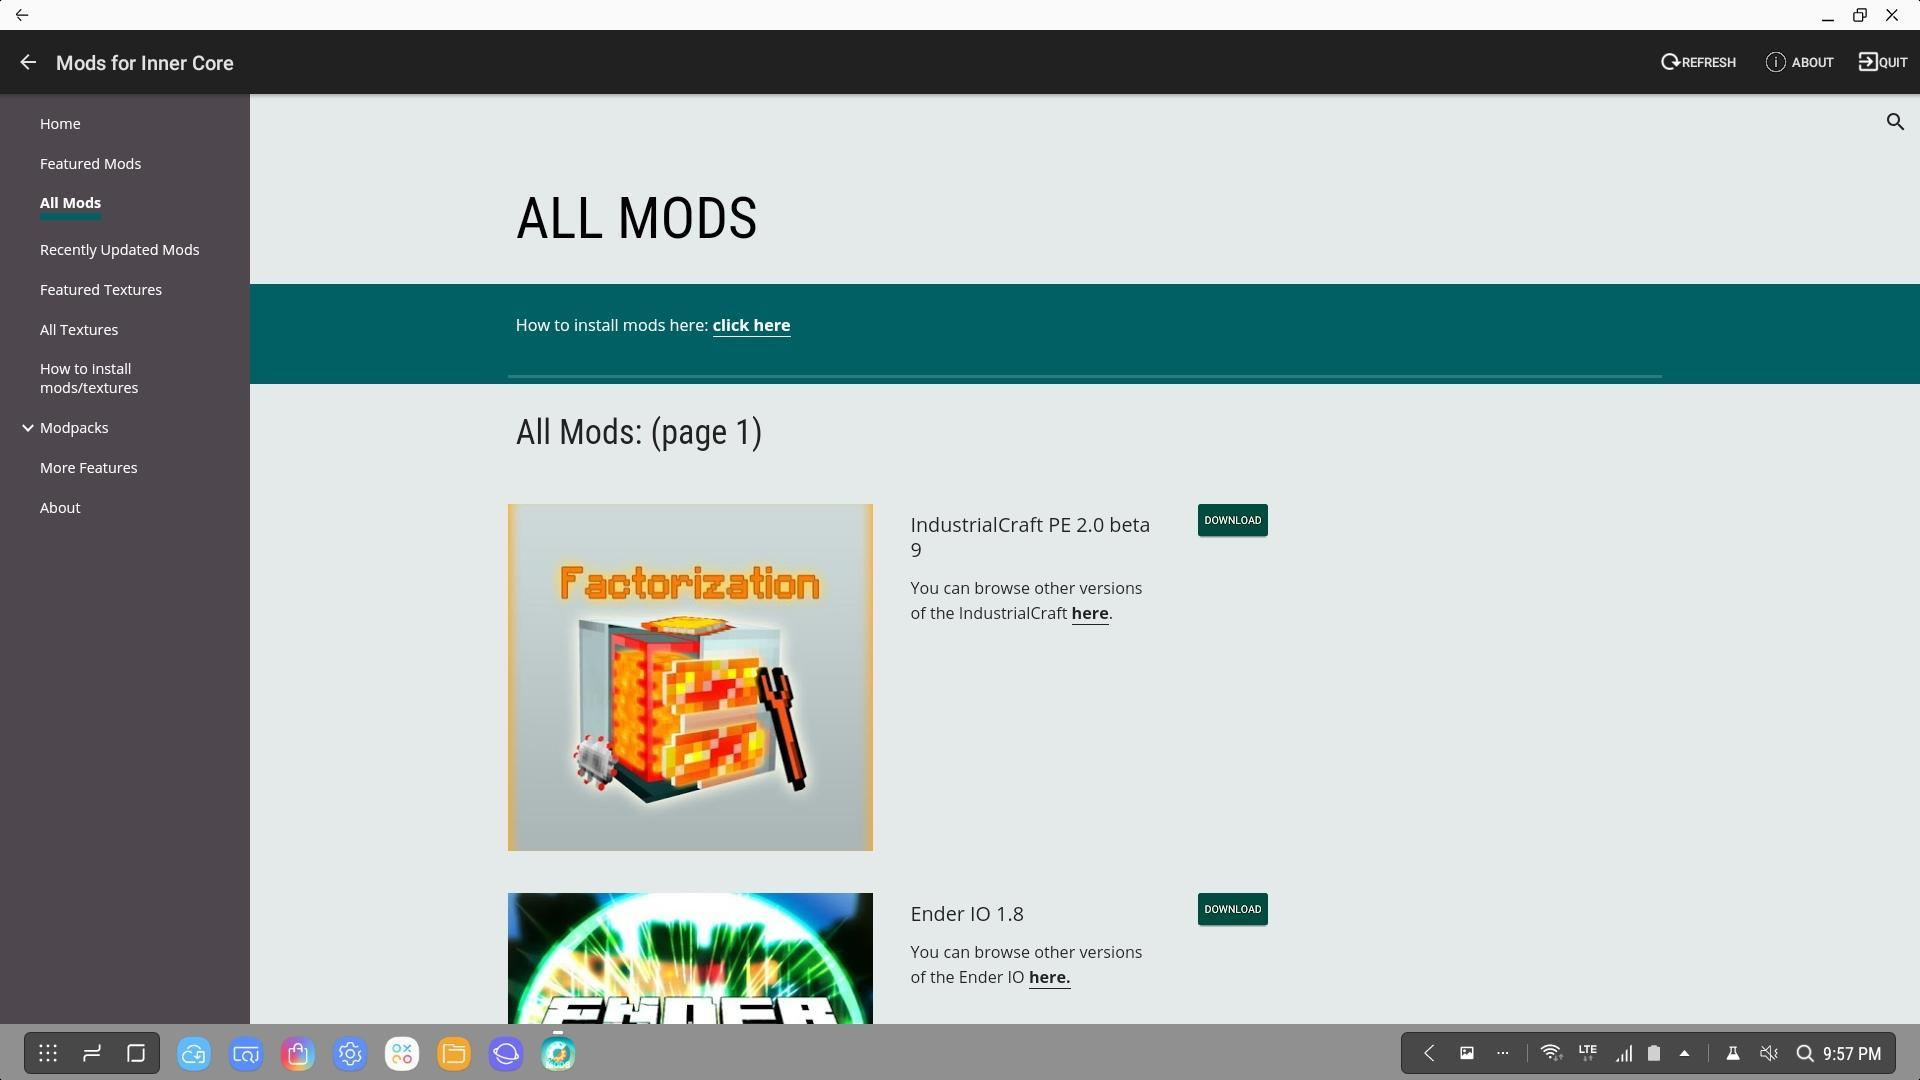 Mods for Inner Core for Android - APK Download